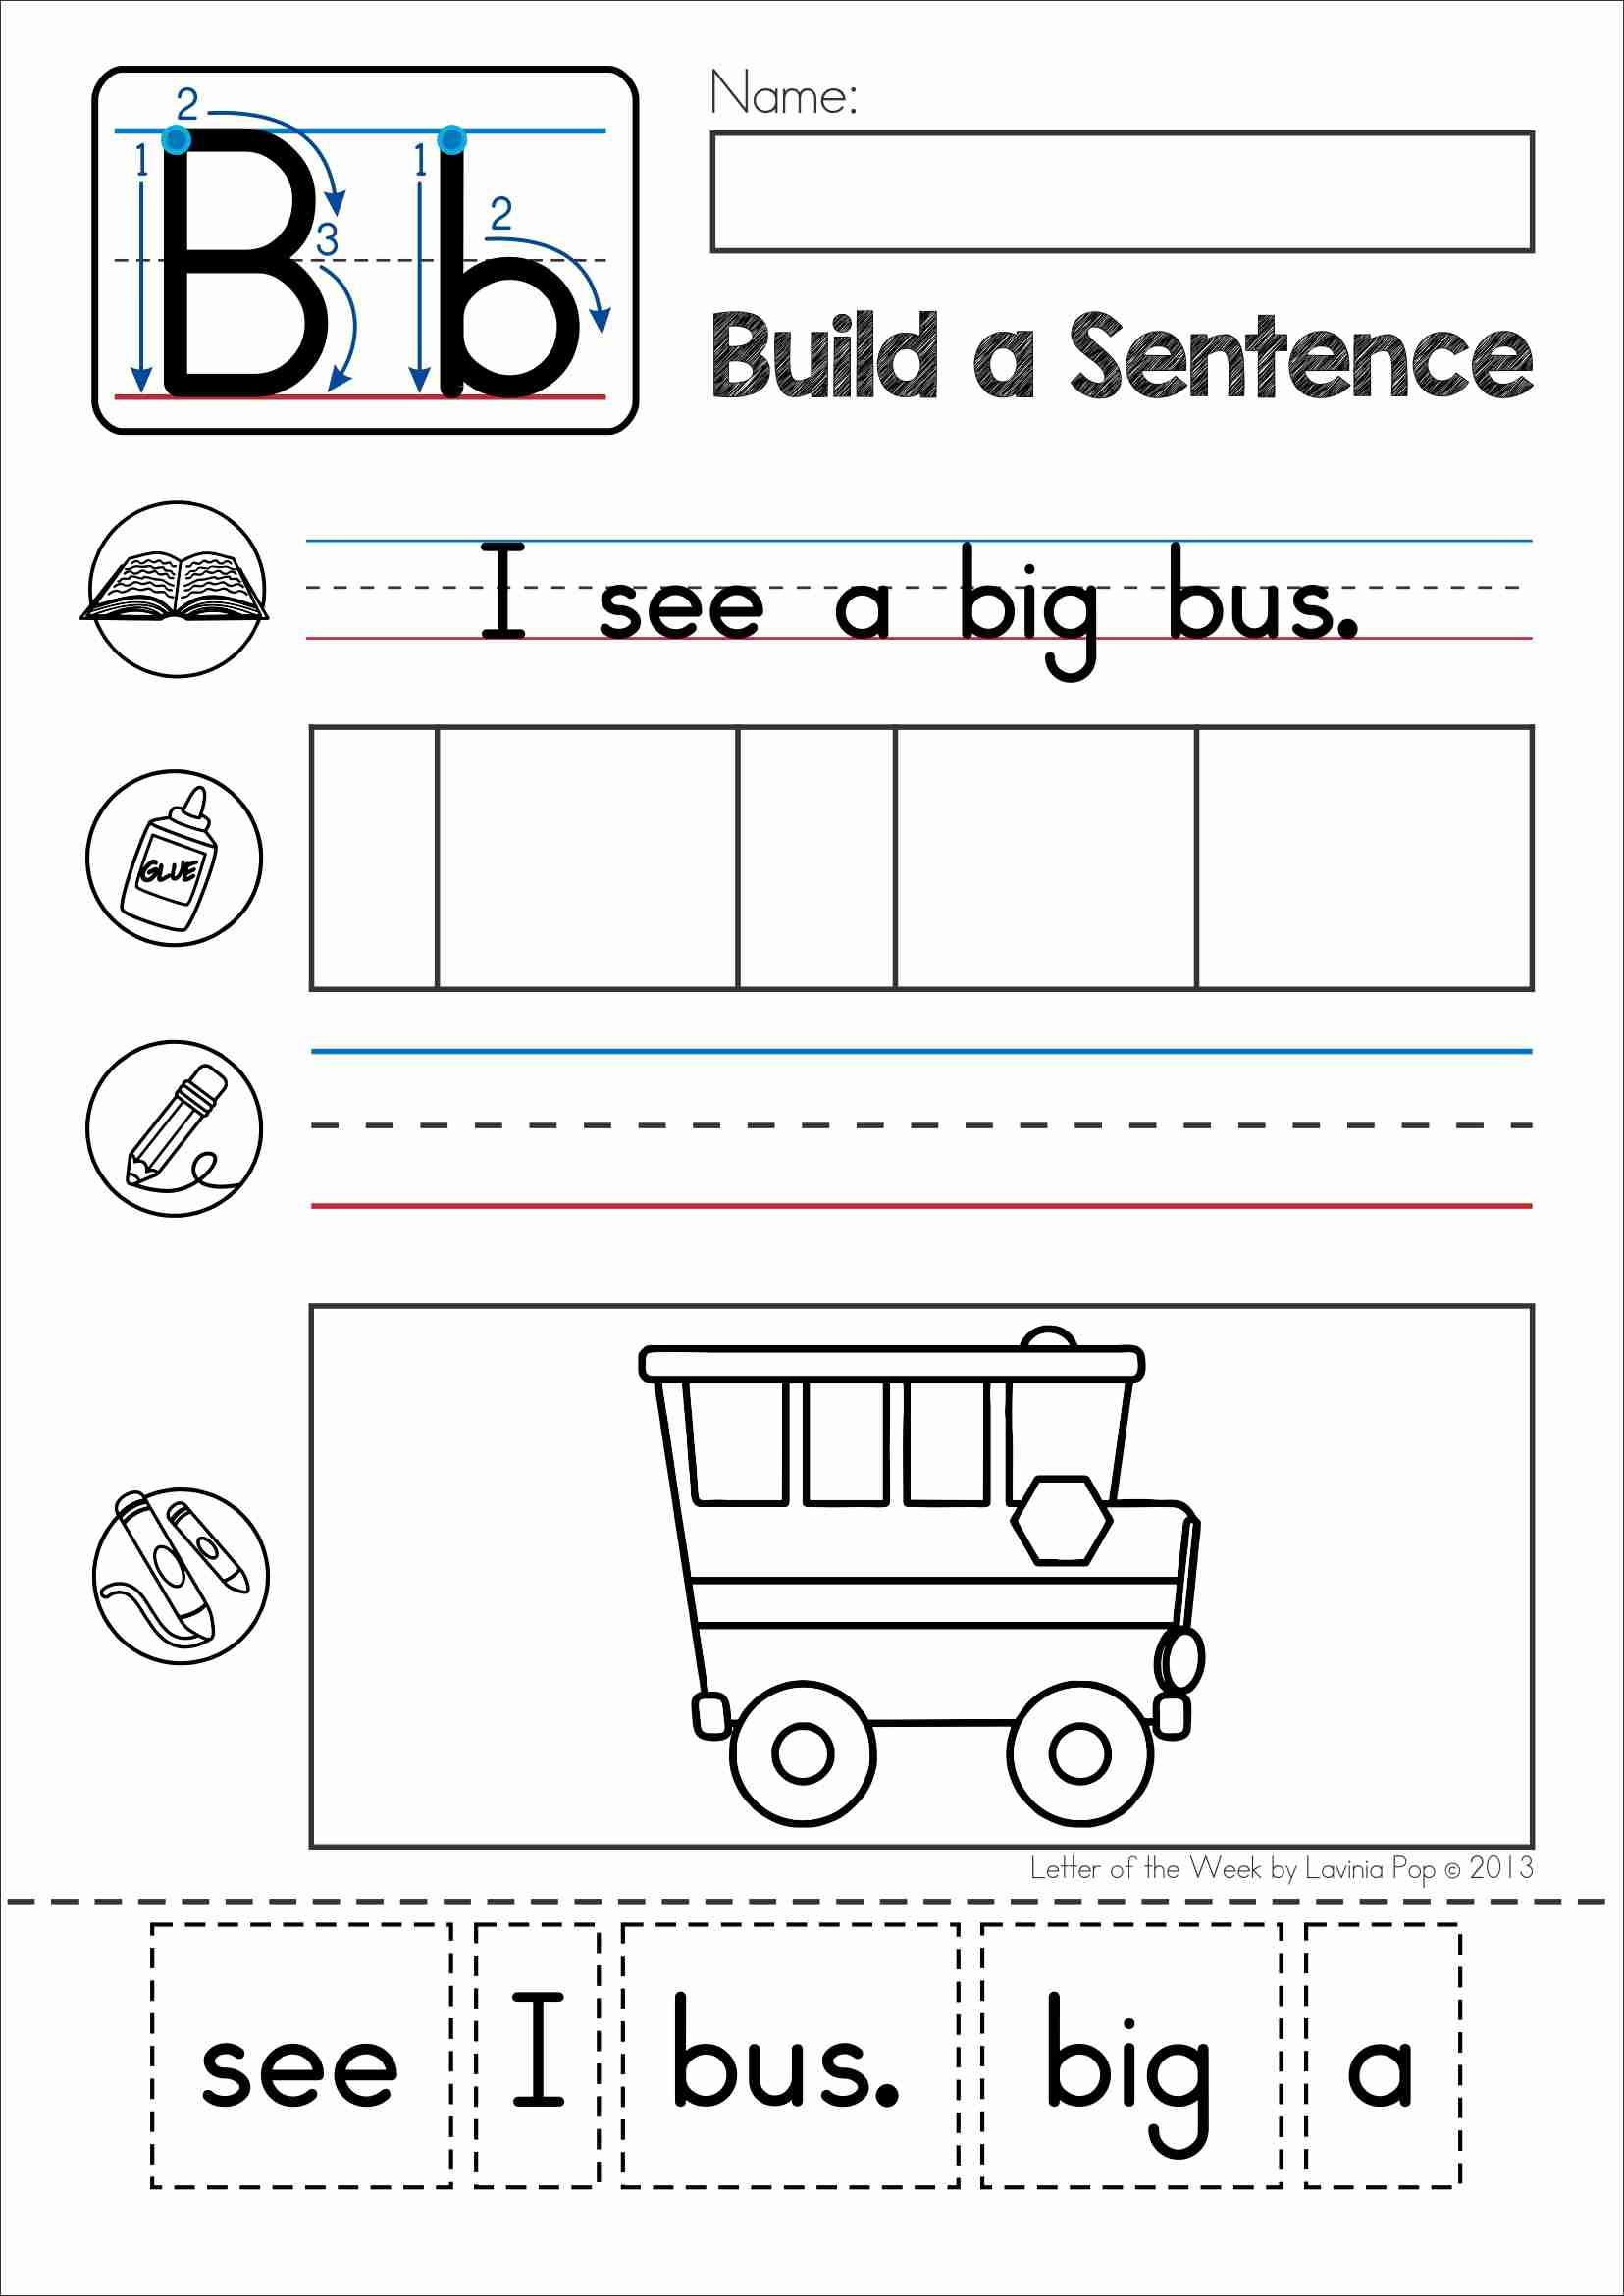 Phonics Letter of the Week B. Build a sentence cut and paste ...